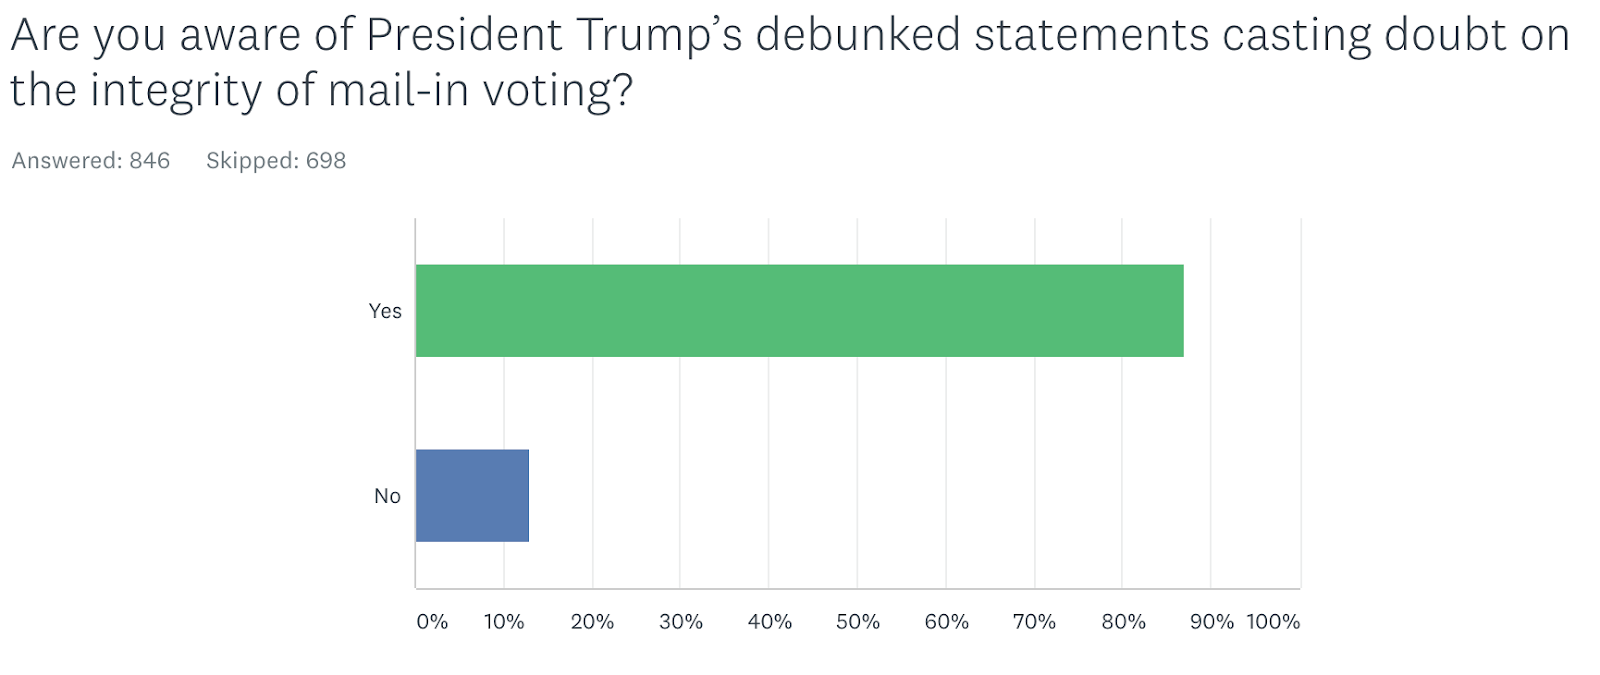 Are you aware of President Trump's debunked statements casting doubt on the integrity of mail-in voting? Yes 87.01%737; No 12.99%110